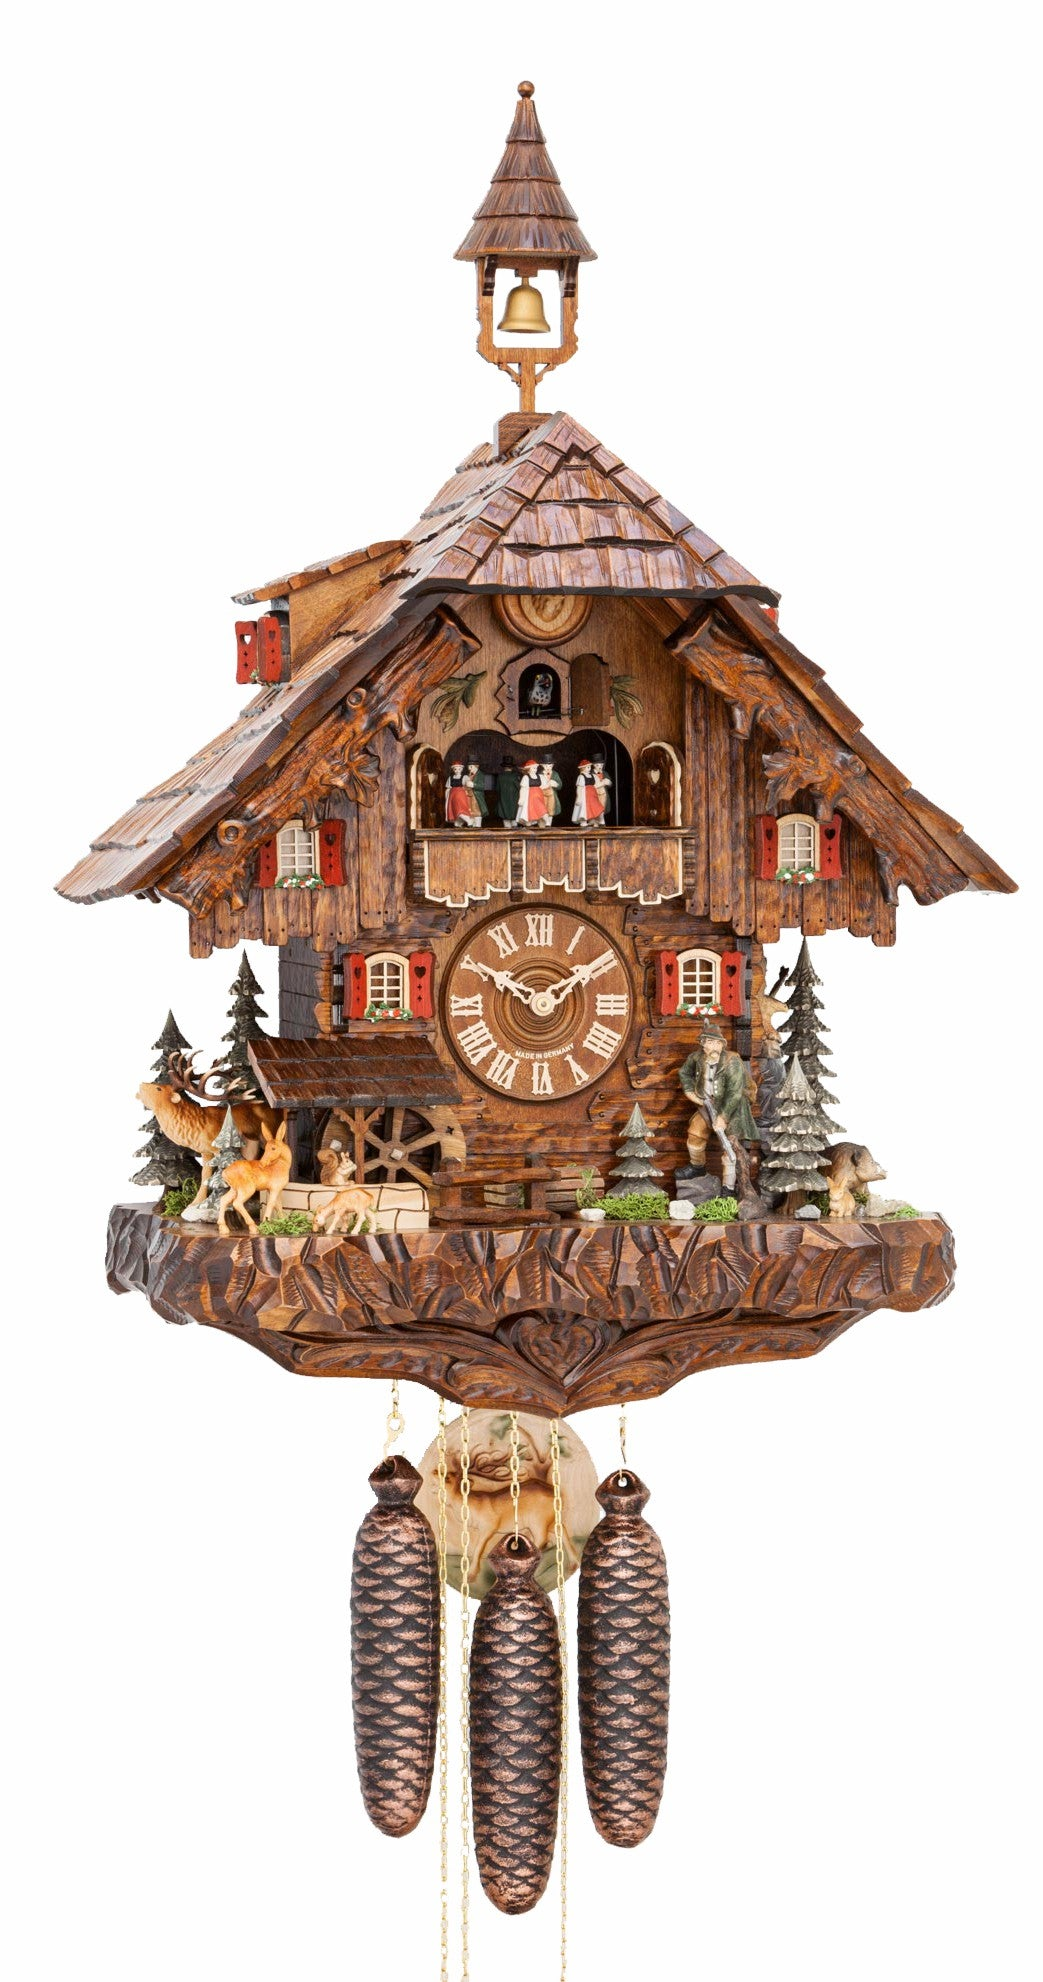 Cuckoo Clock Hunter's Forest House Moving Mill Wheel 8-Day Music - Cuckoo Clock Meister